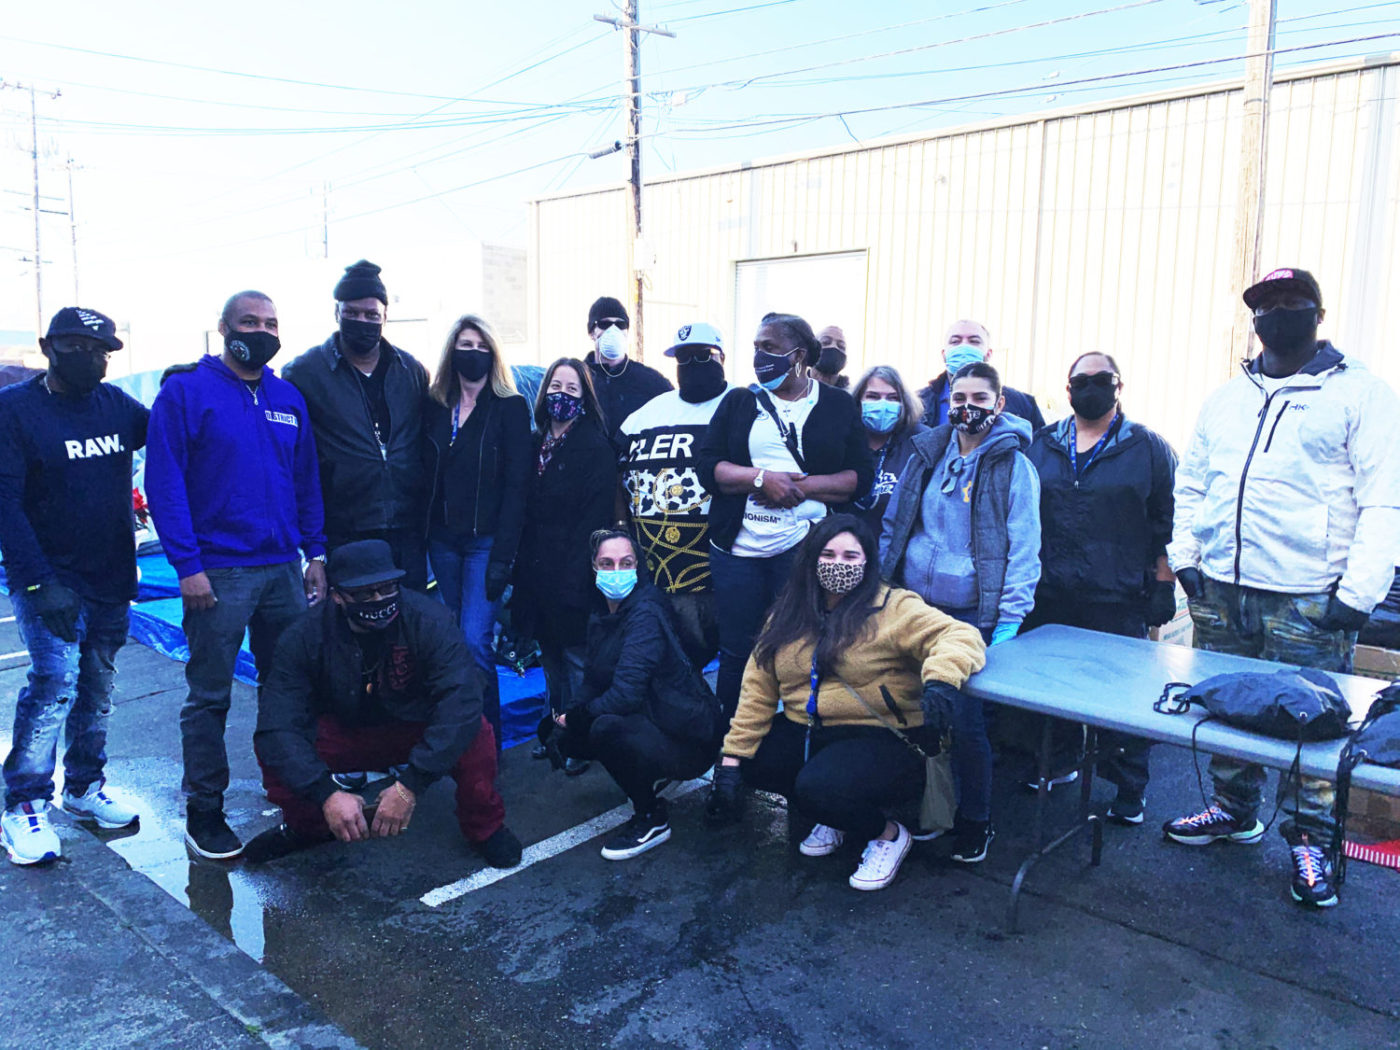 Mother-Browns-coat-giveaway-Shamann-Adult-Probation-Nova-Westside-Positive-Direction-122120-by-Malik-1400x1050, The United Council for Human Services and the Curtis Family: Serving BVHP in a time of need, Local News & Views